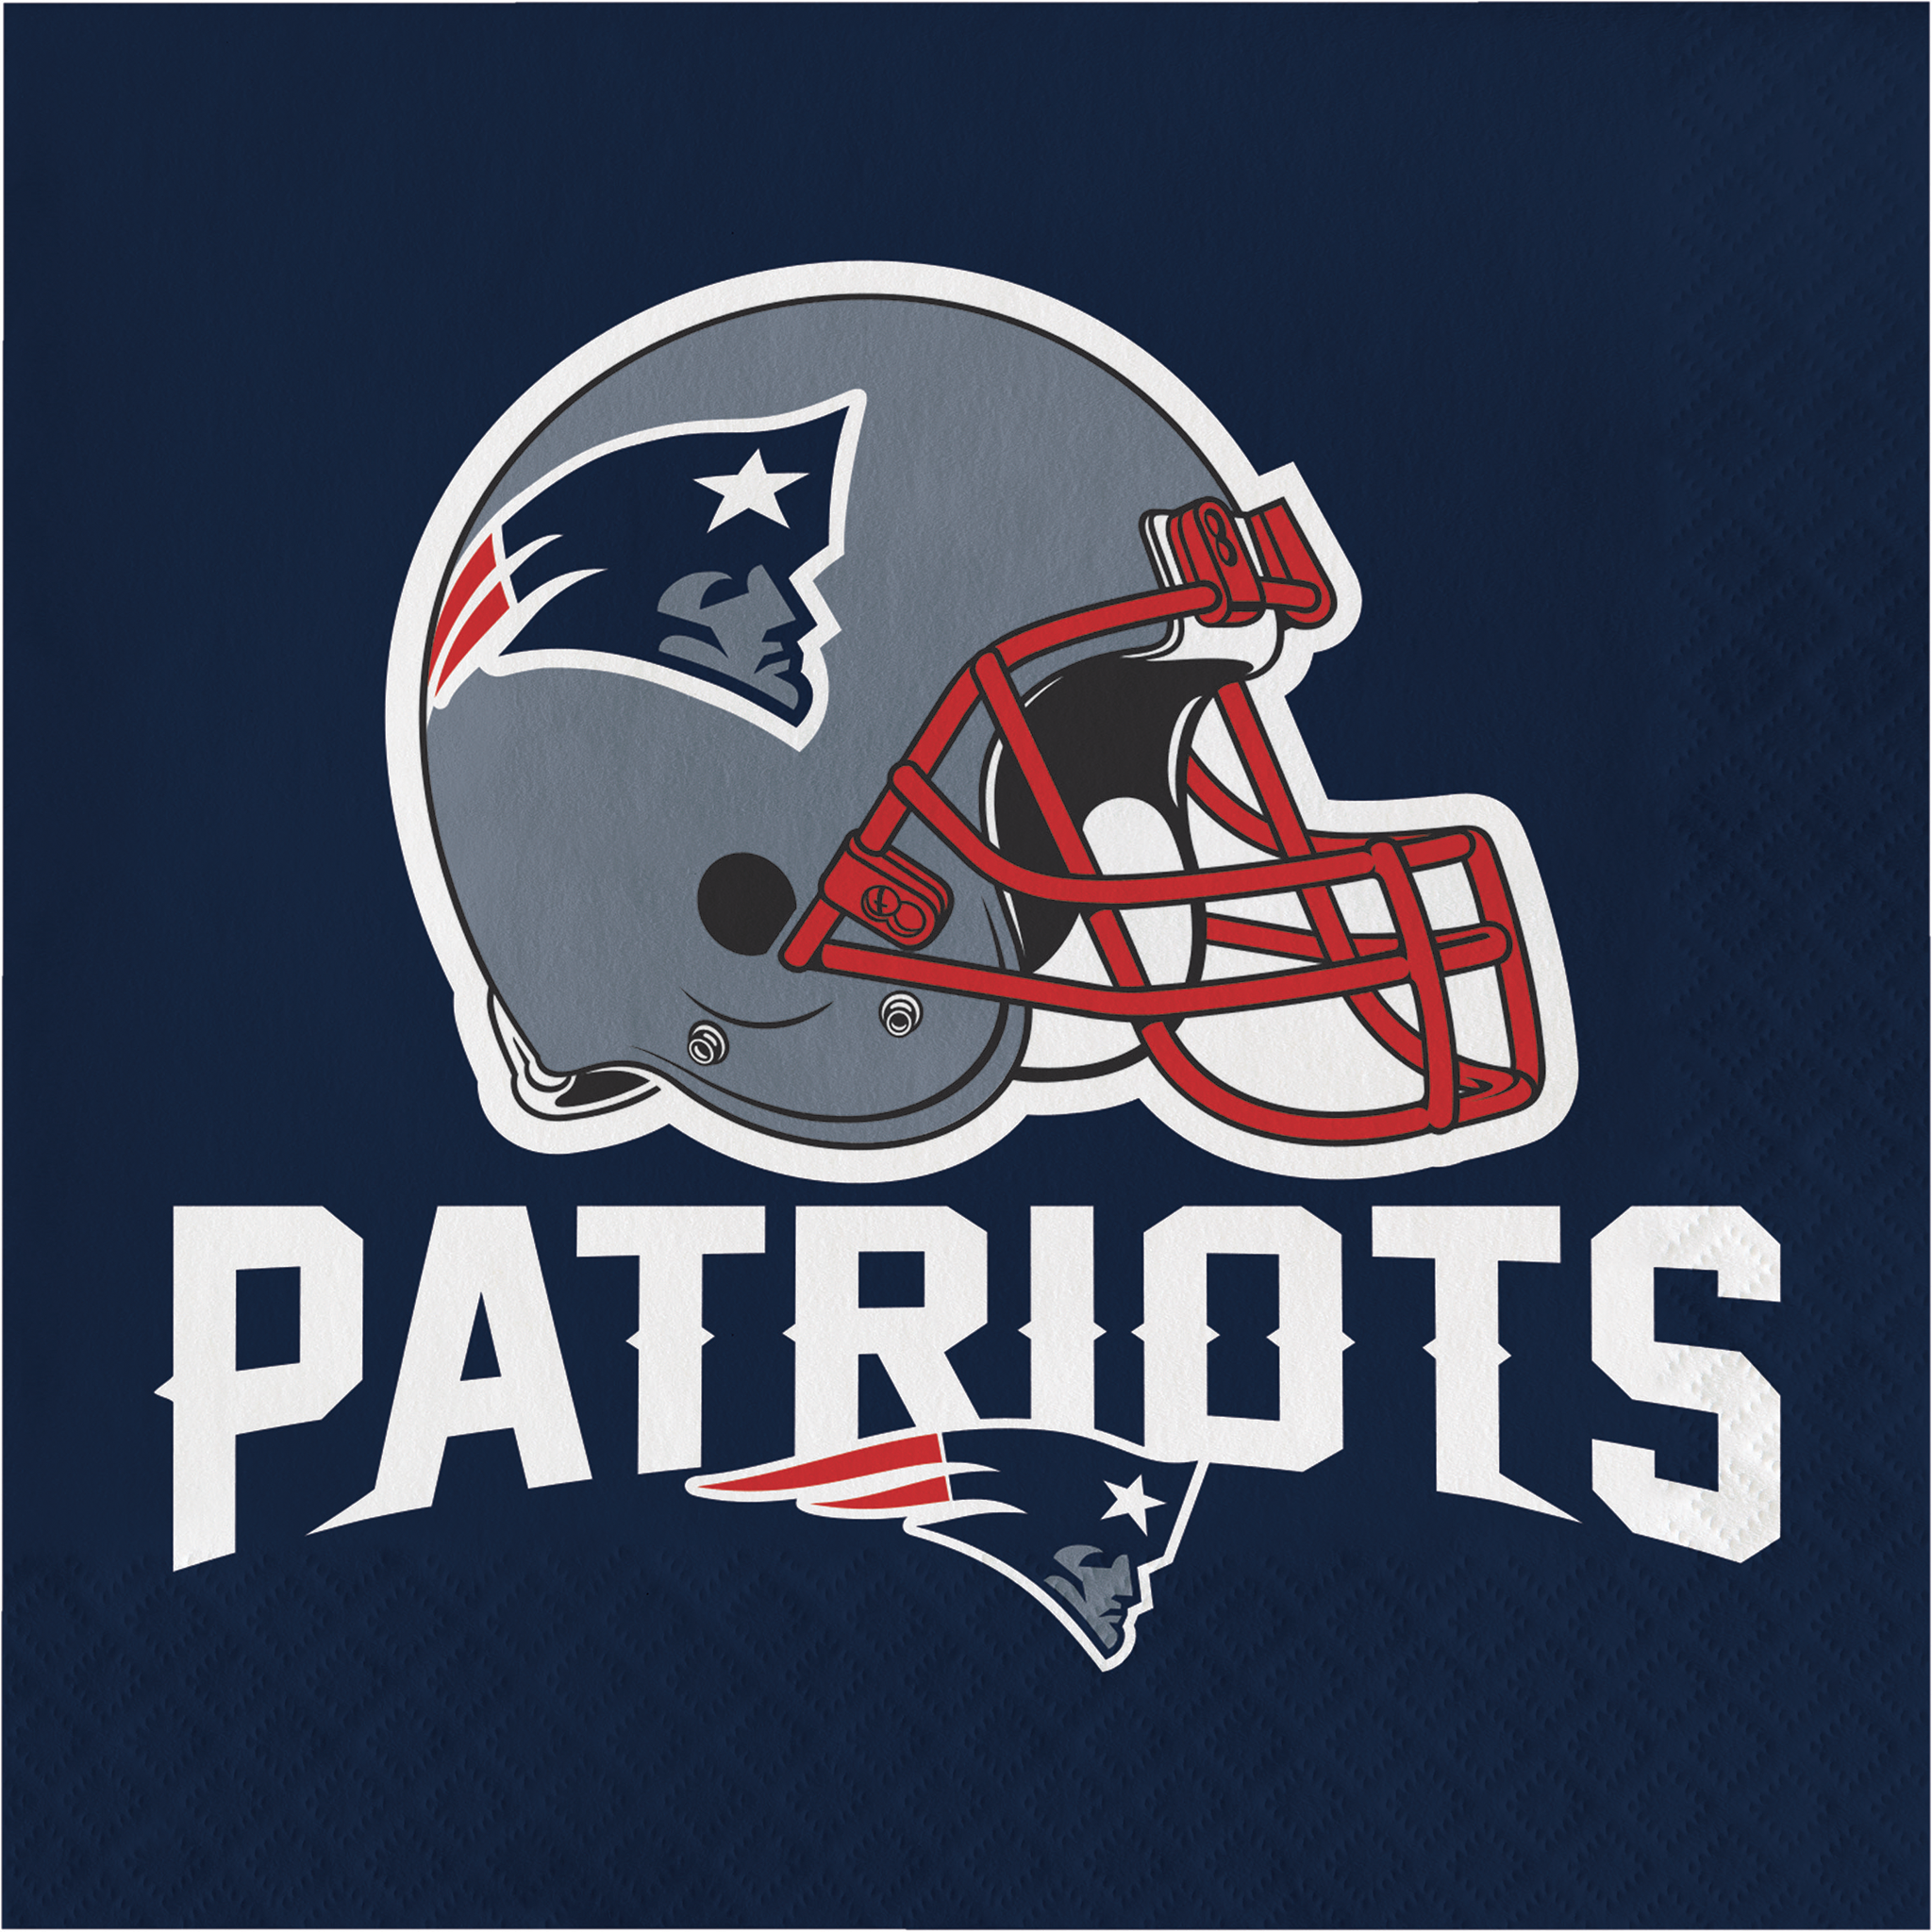 192 Case New England Patriots Lunch Napkins 2 Ply New England Patriots Logo New England Patriots Nfl New England Patriots